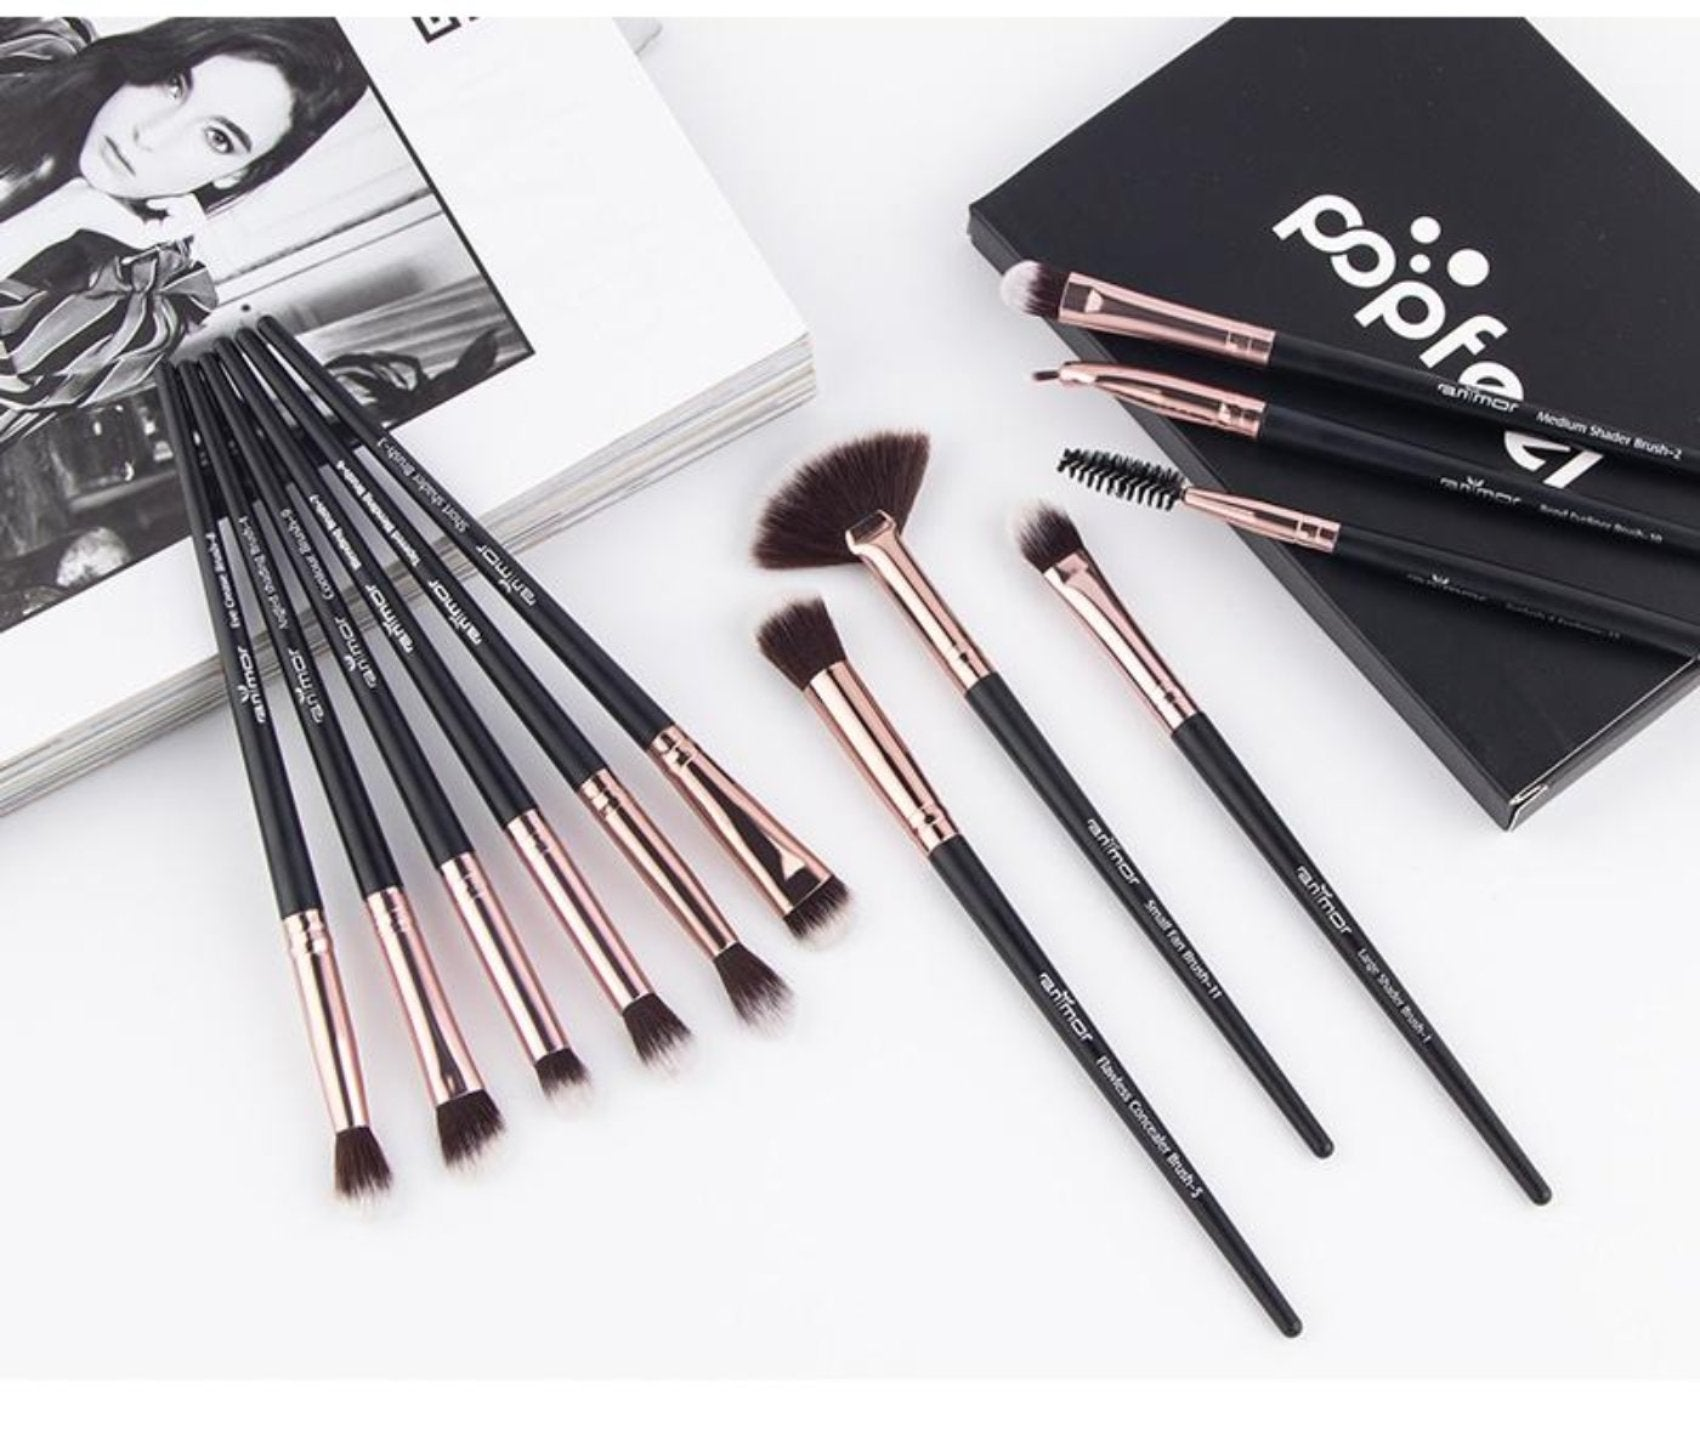 Professional 12 PCS Makeup Brush Set - Blindly Shop